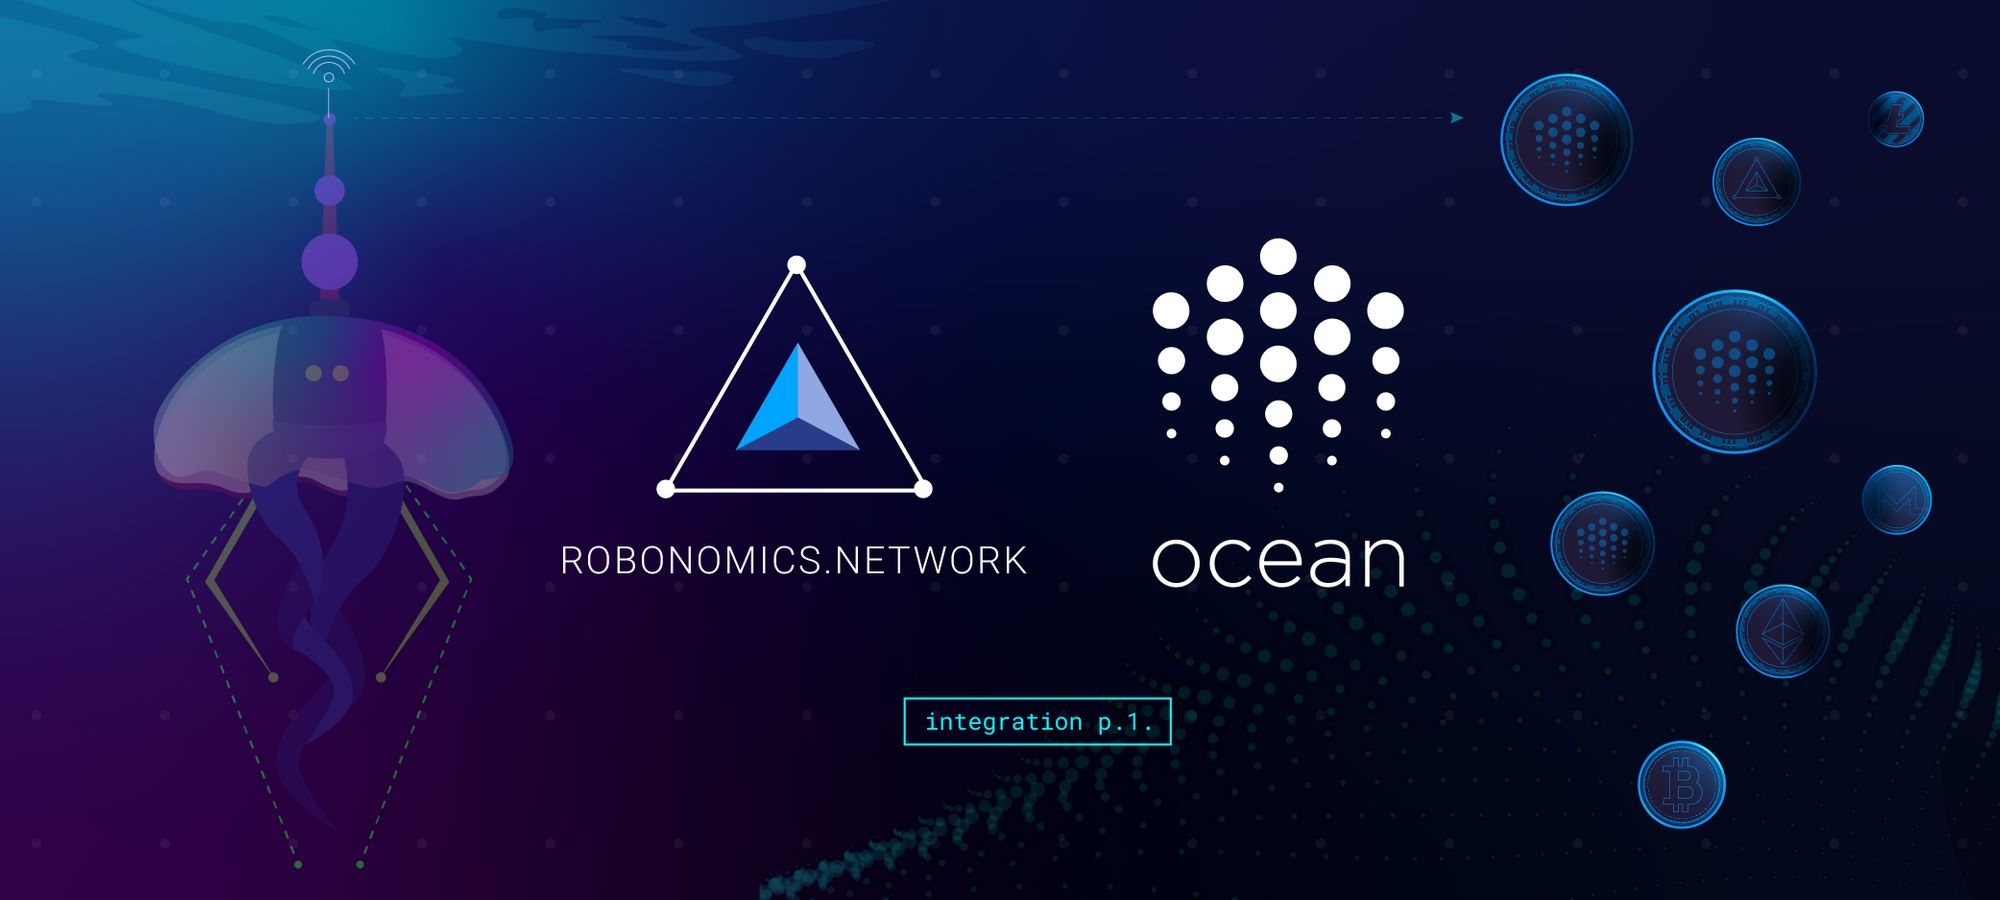 Robonomics Network x Ocean Protocol Collaboration p.1